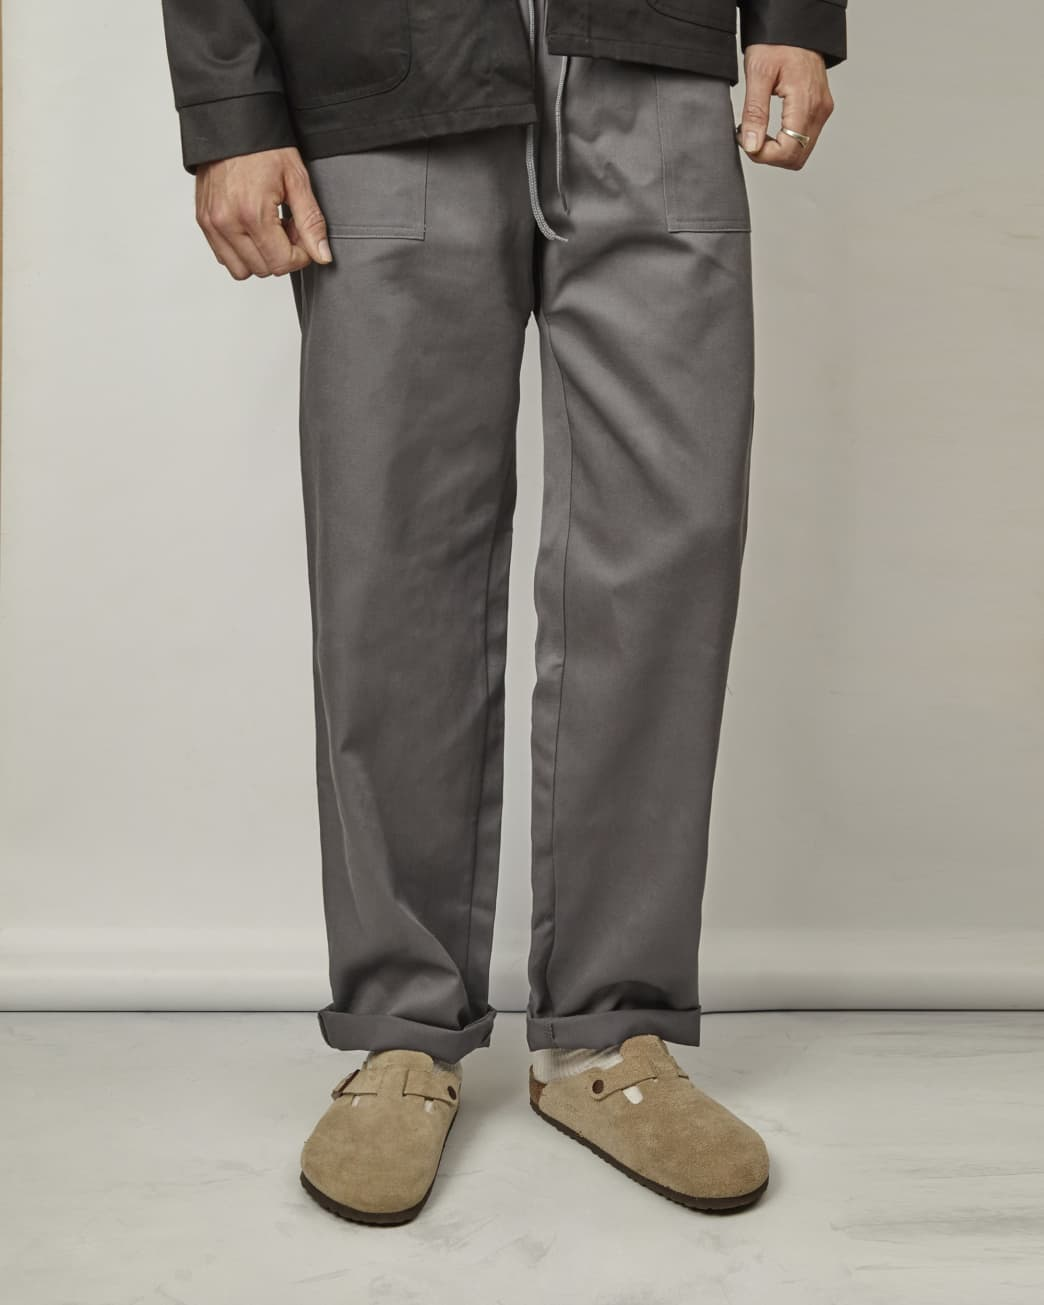 Service Works - Classic Chef Pants - Indigo Denim   Trousers by Service Works 7